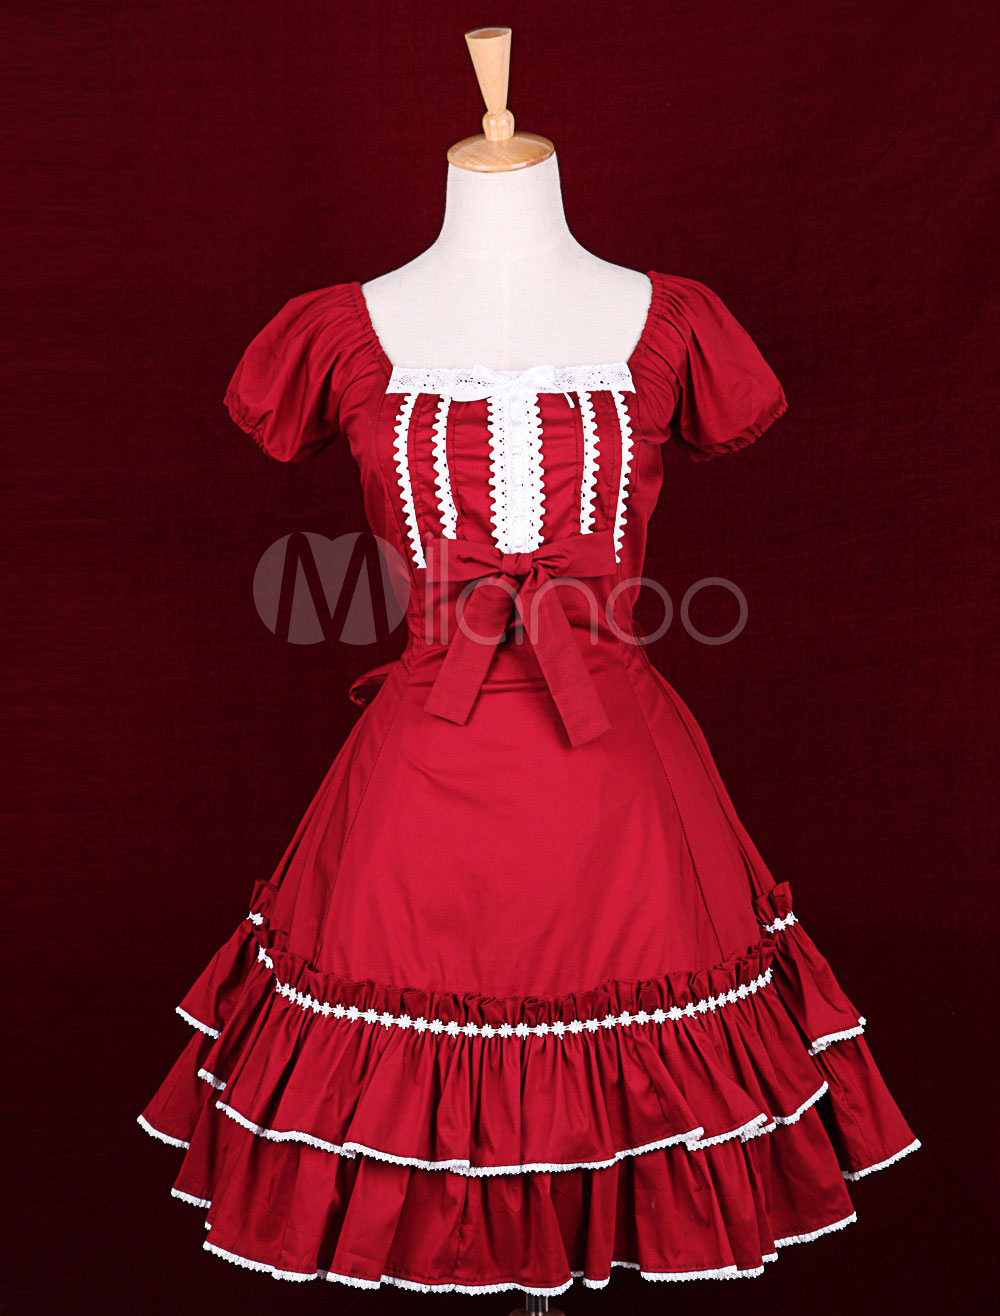 Red Cotton Square Neck Short Sleeves Bow Classic Lolita Dress   a179